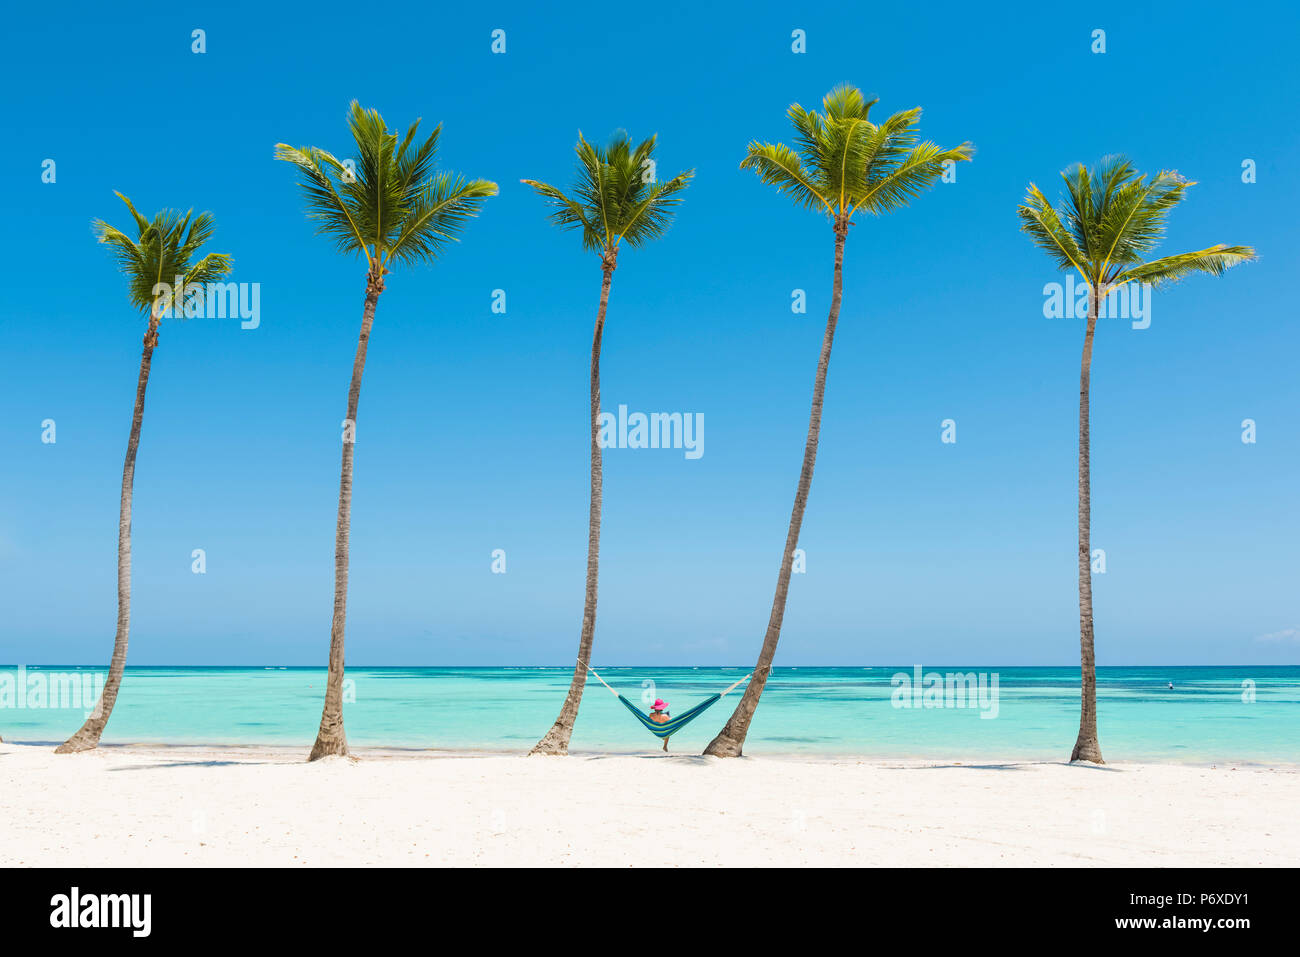 Juanillo Beach (playa Juanillo), Punta Cana, Dominican Republic. Woman relaxing on a hammock on a palm-fringed beach (MR). - Stock Image